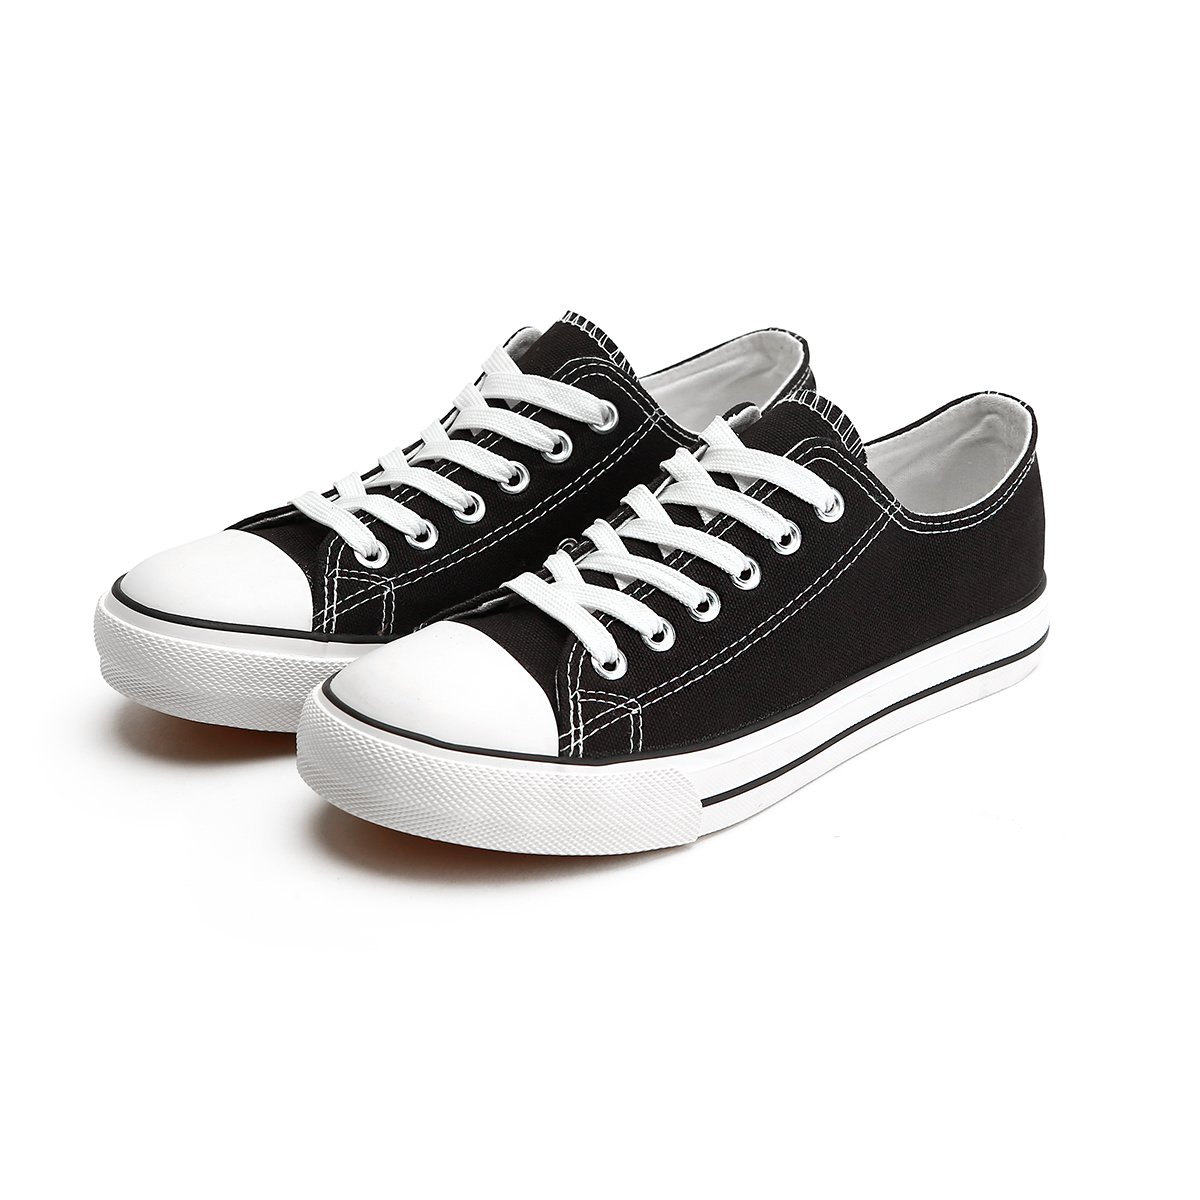 da3b885b8cc6 ZGR Women s Canvas Low Top Sneaker Lace-up Classic Casual Shoes Black and  White